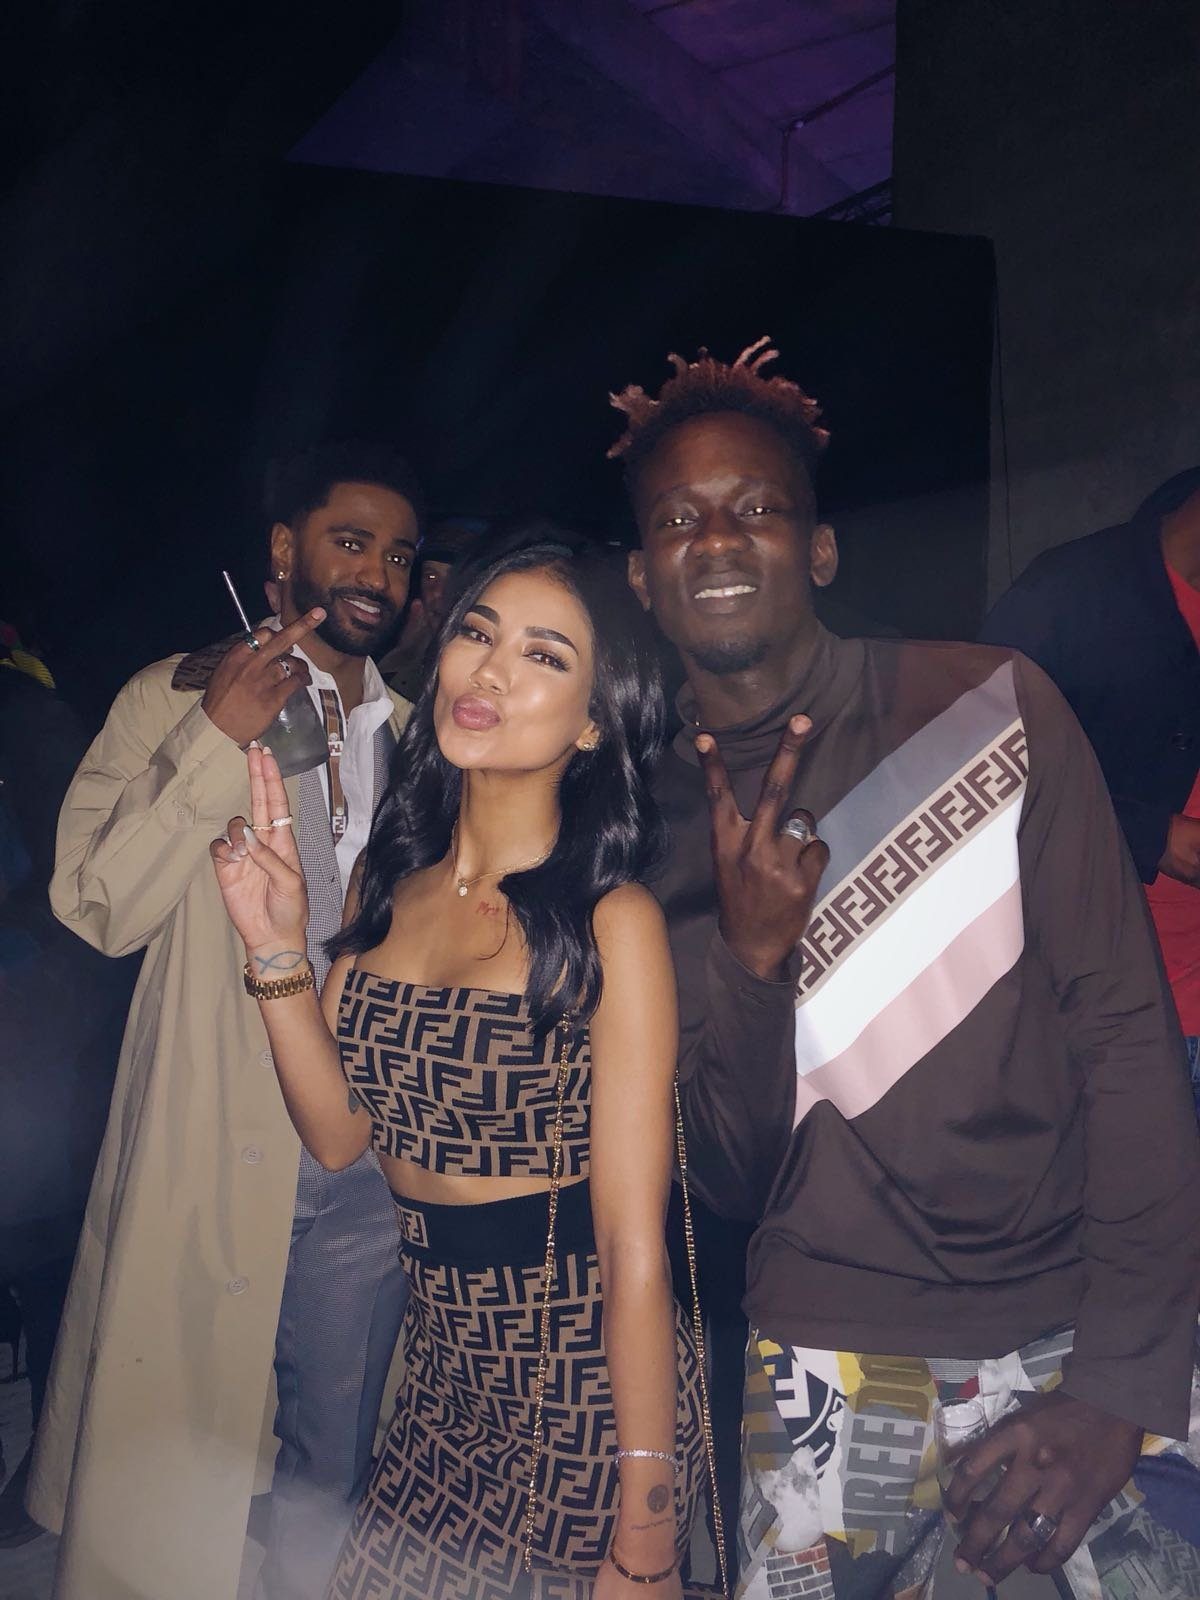 Mr Eazi Attends Fendi Party With Jhene Aiko And Big Sean